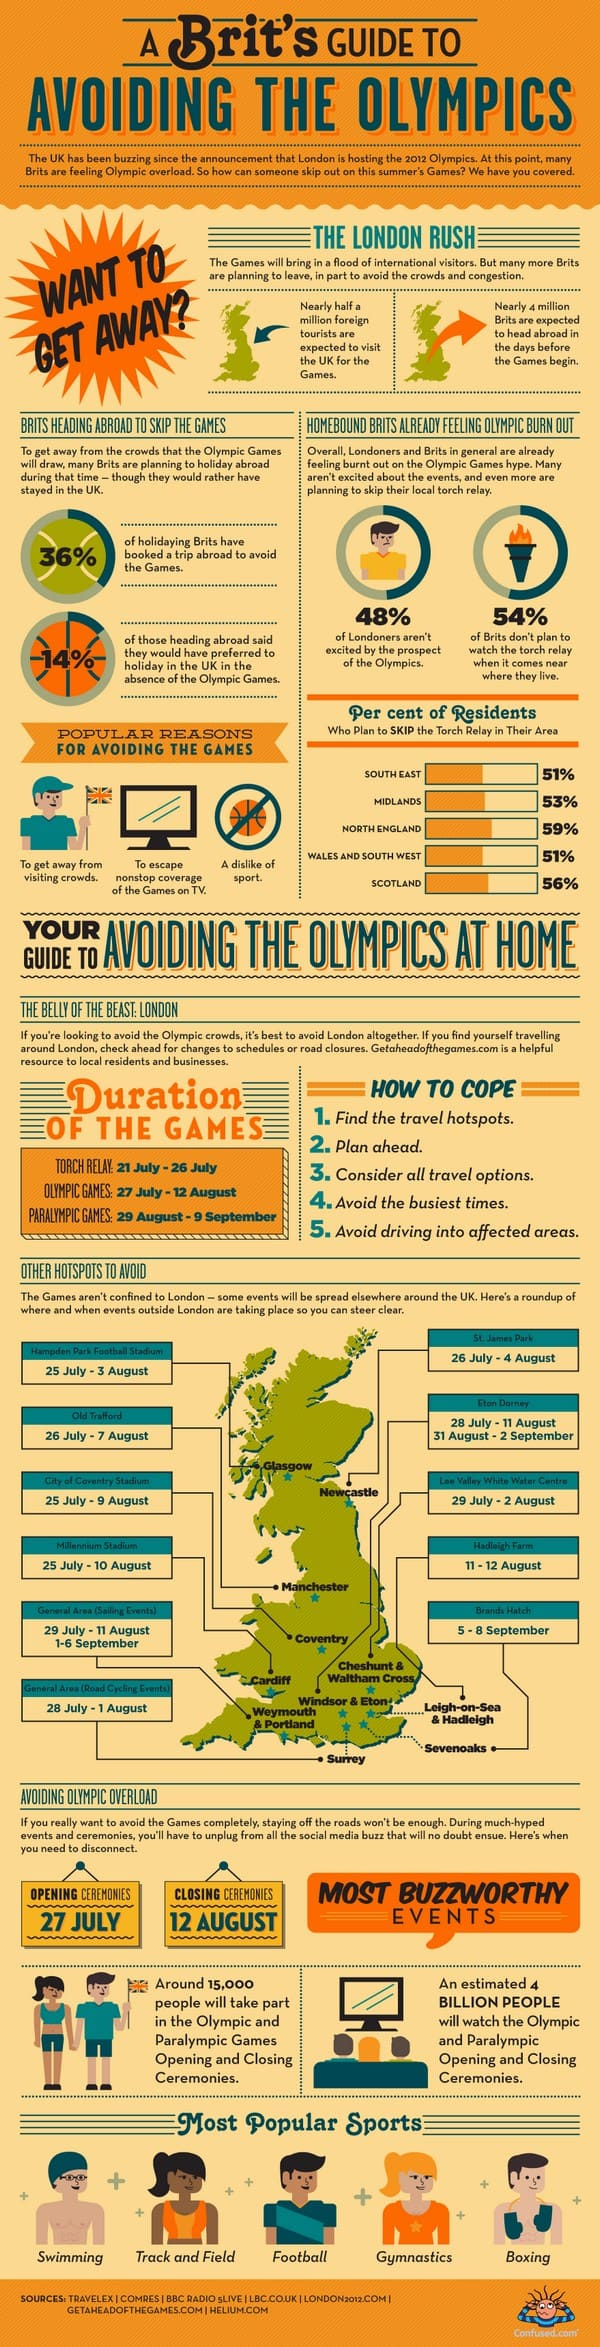 London 2012 Avoiding the Olympics Infographic